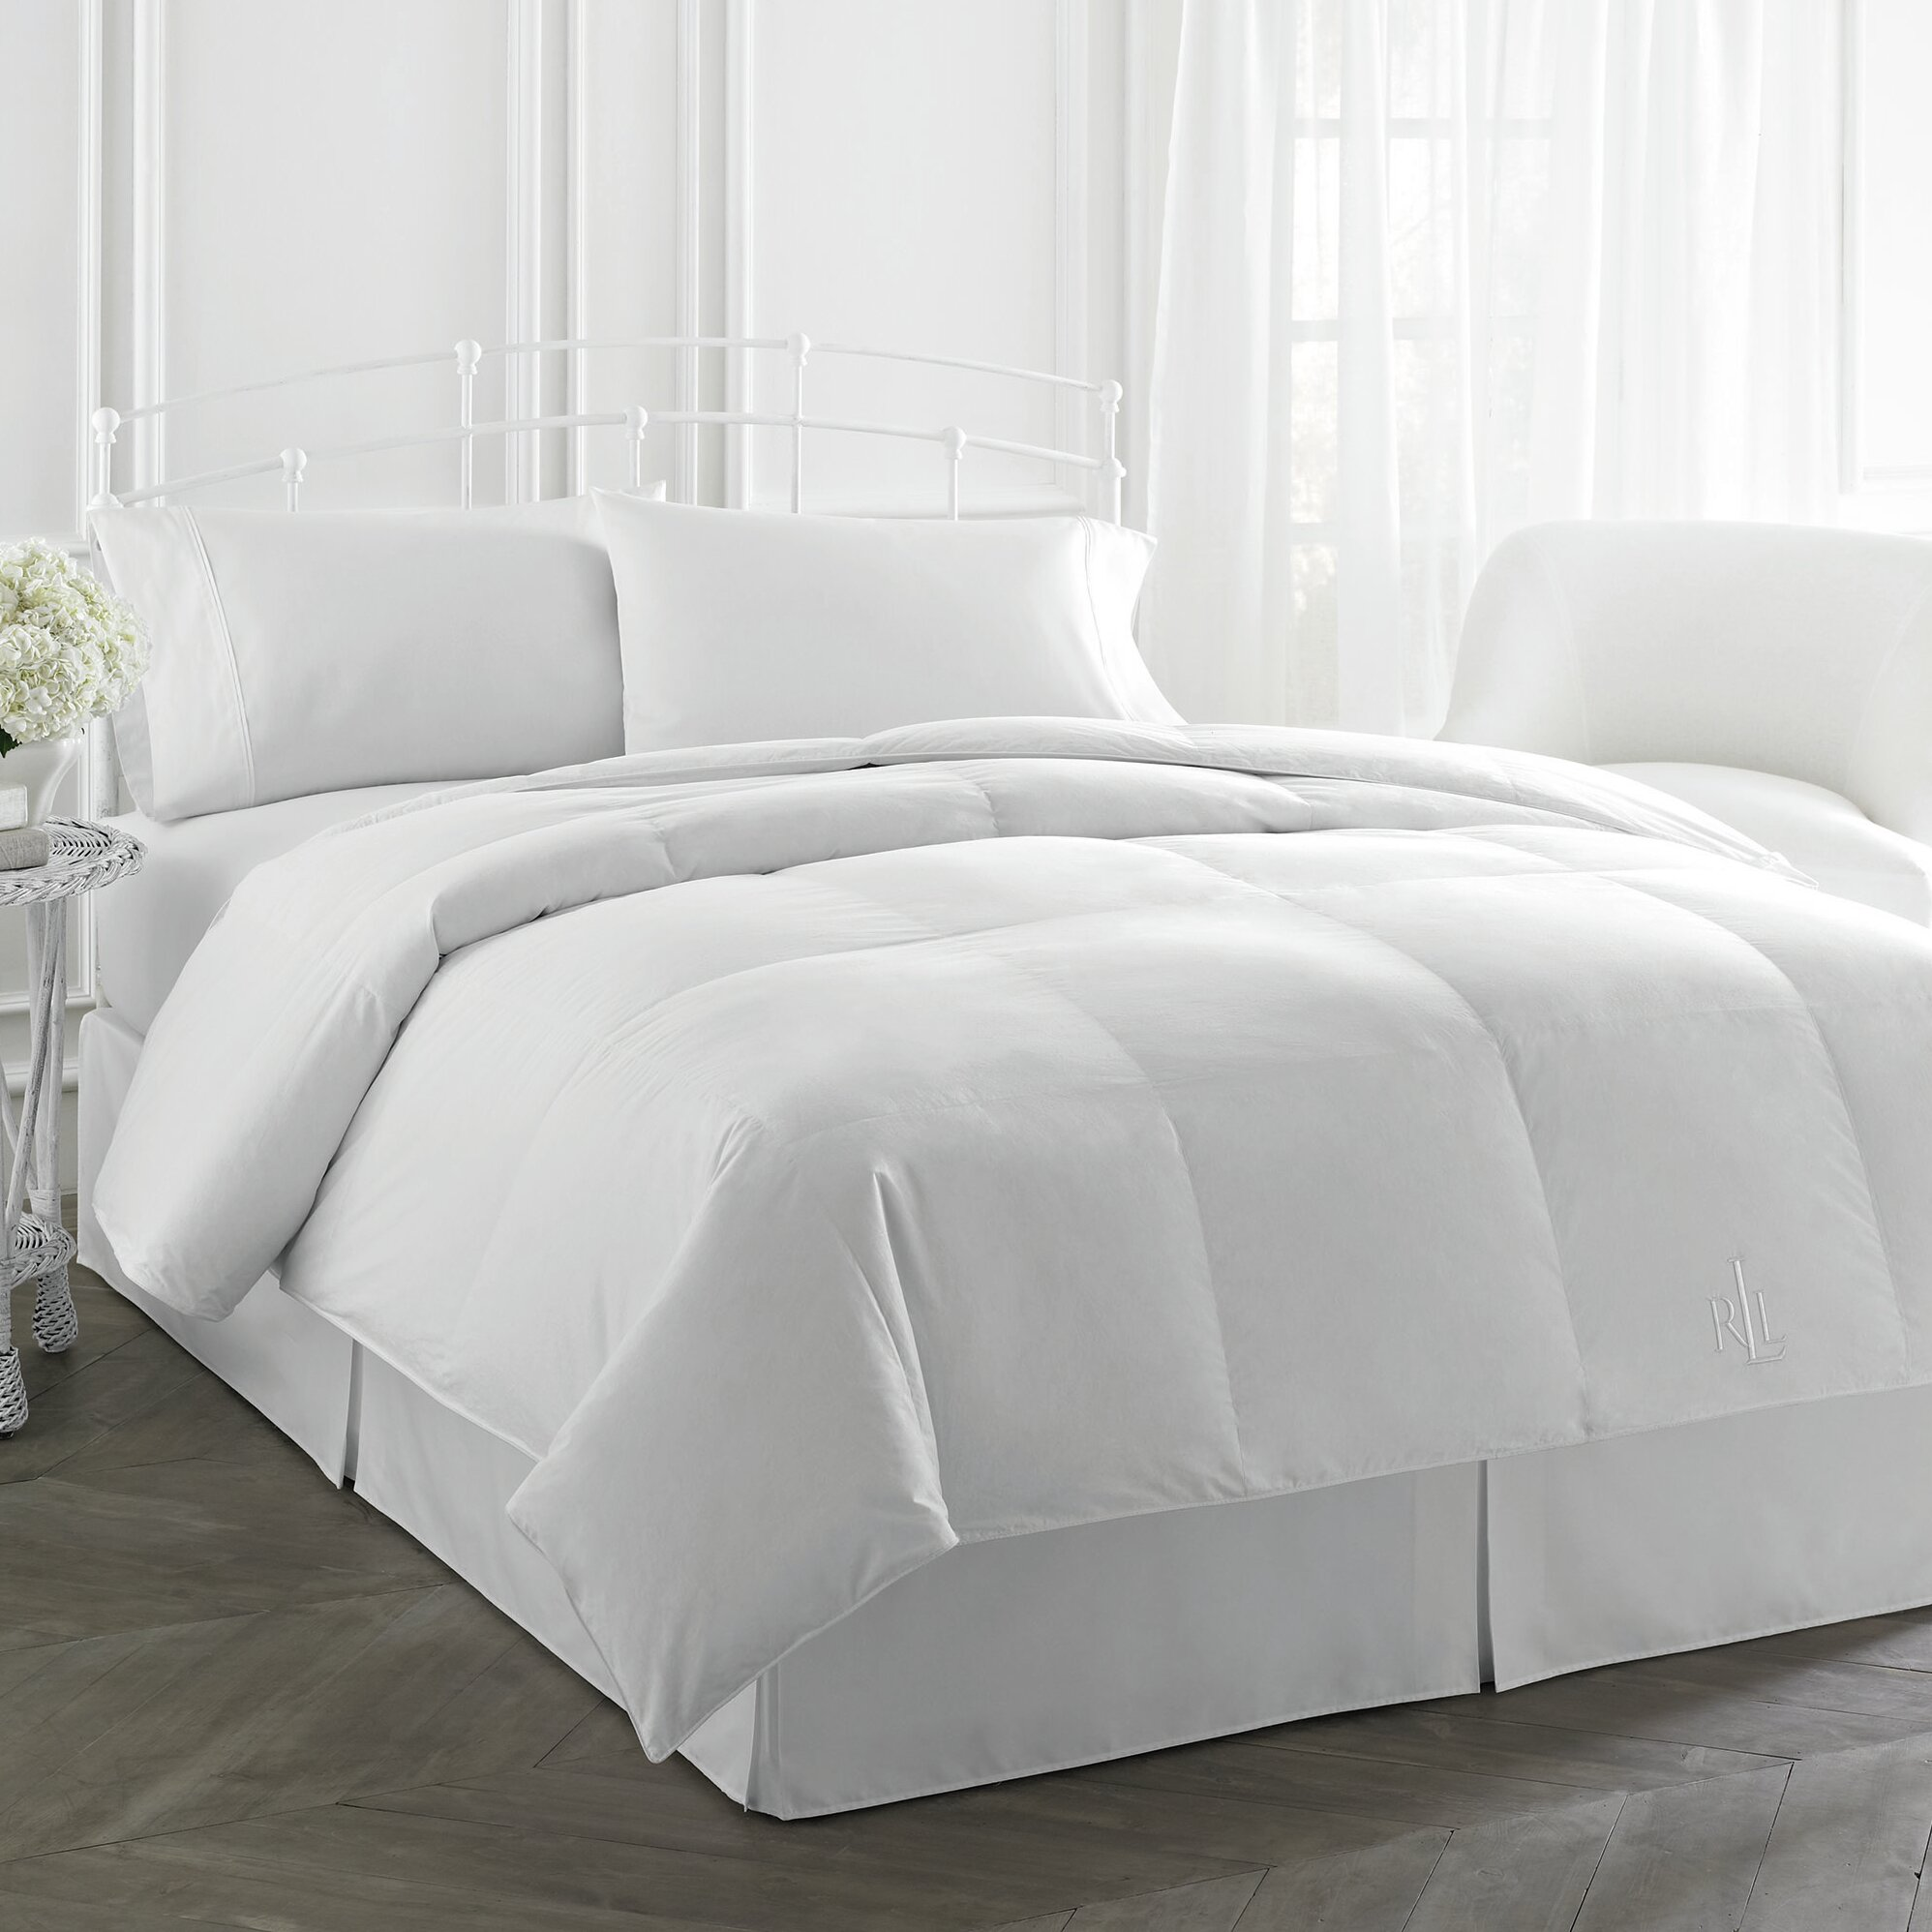 down weight and feather a free buy bath shipping today how comforter all product goose season to bedding canadian overstock white